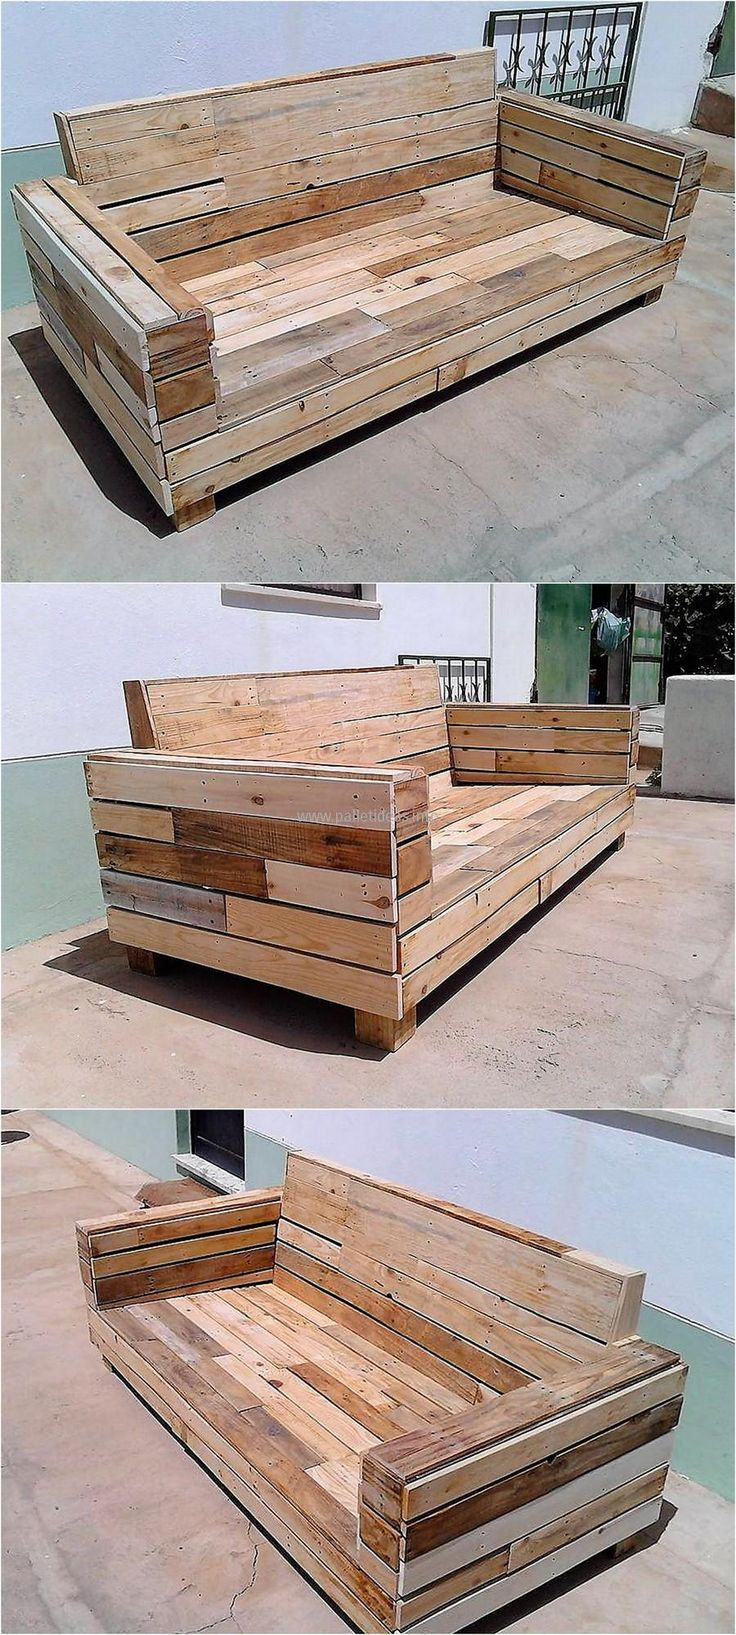 Pallet Home Best 25 Wood Pallet Couch Ideas Only On Pinterest Pallet